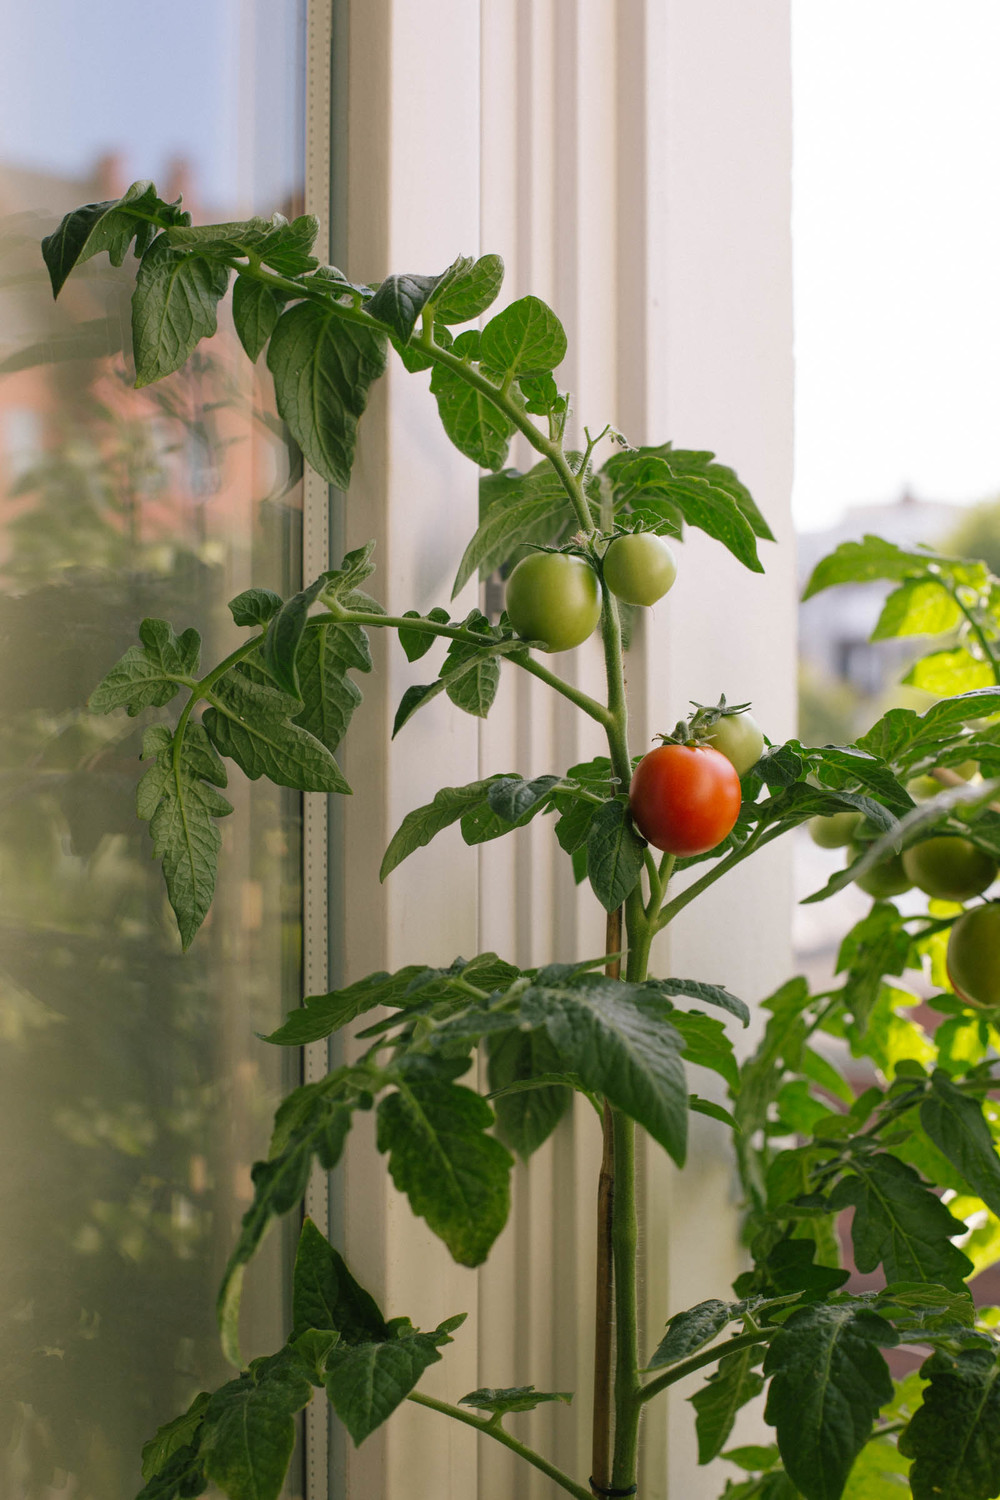 August 2015: A red tomato ready for picking.